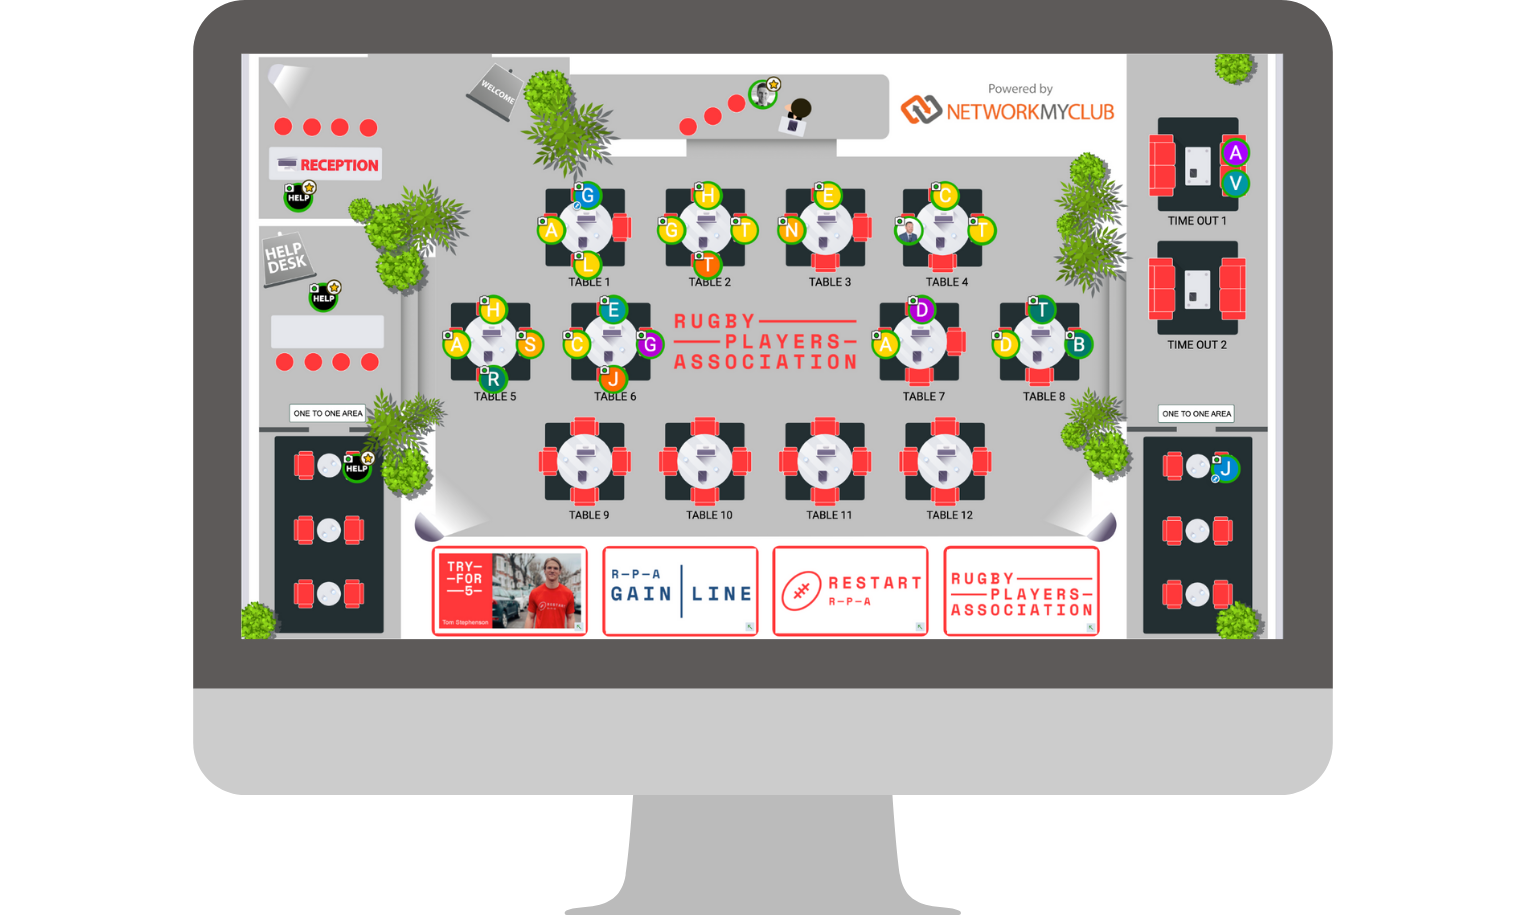 Rugby Players Association Virtual Networking Event Floor Plan